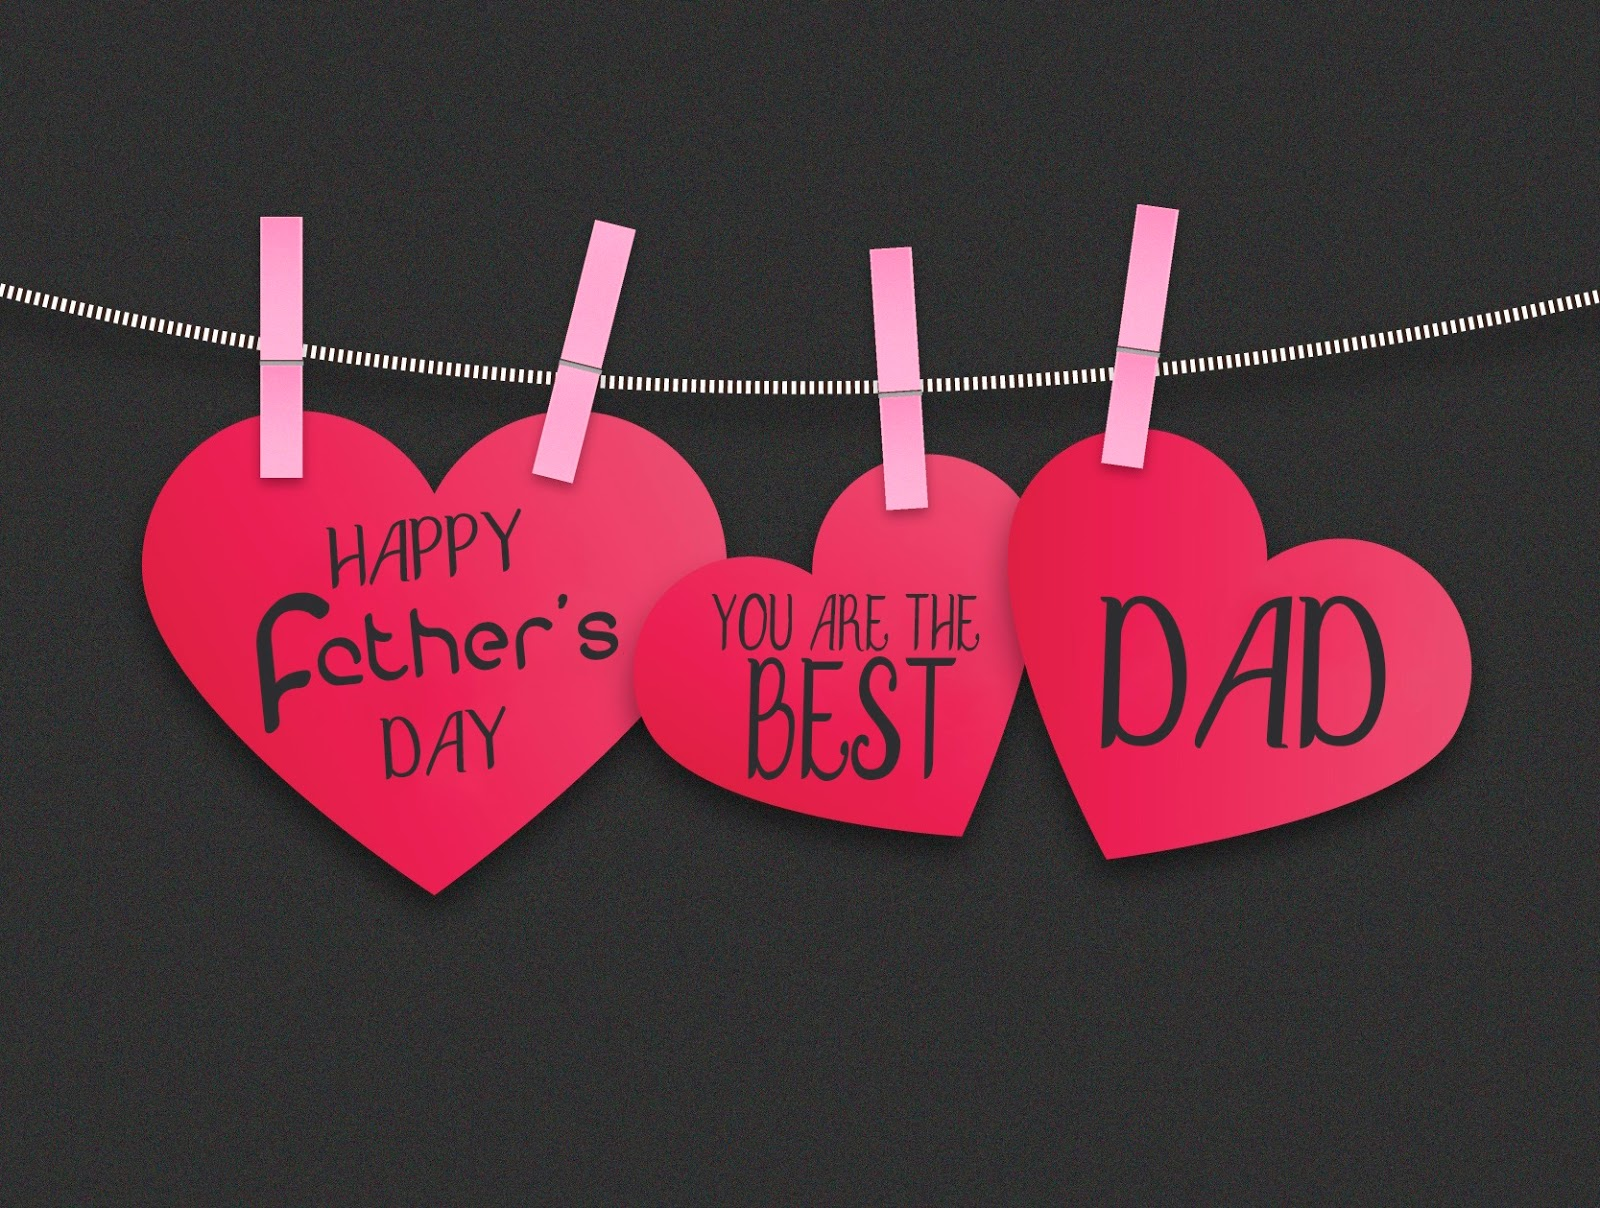 Happy Fathers Day 2016 HD Wallpapers Download   HD Wallpaper 1600x1208